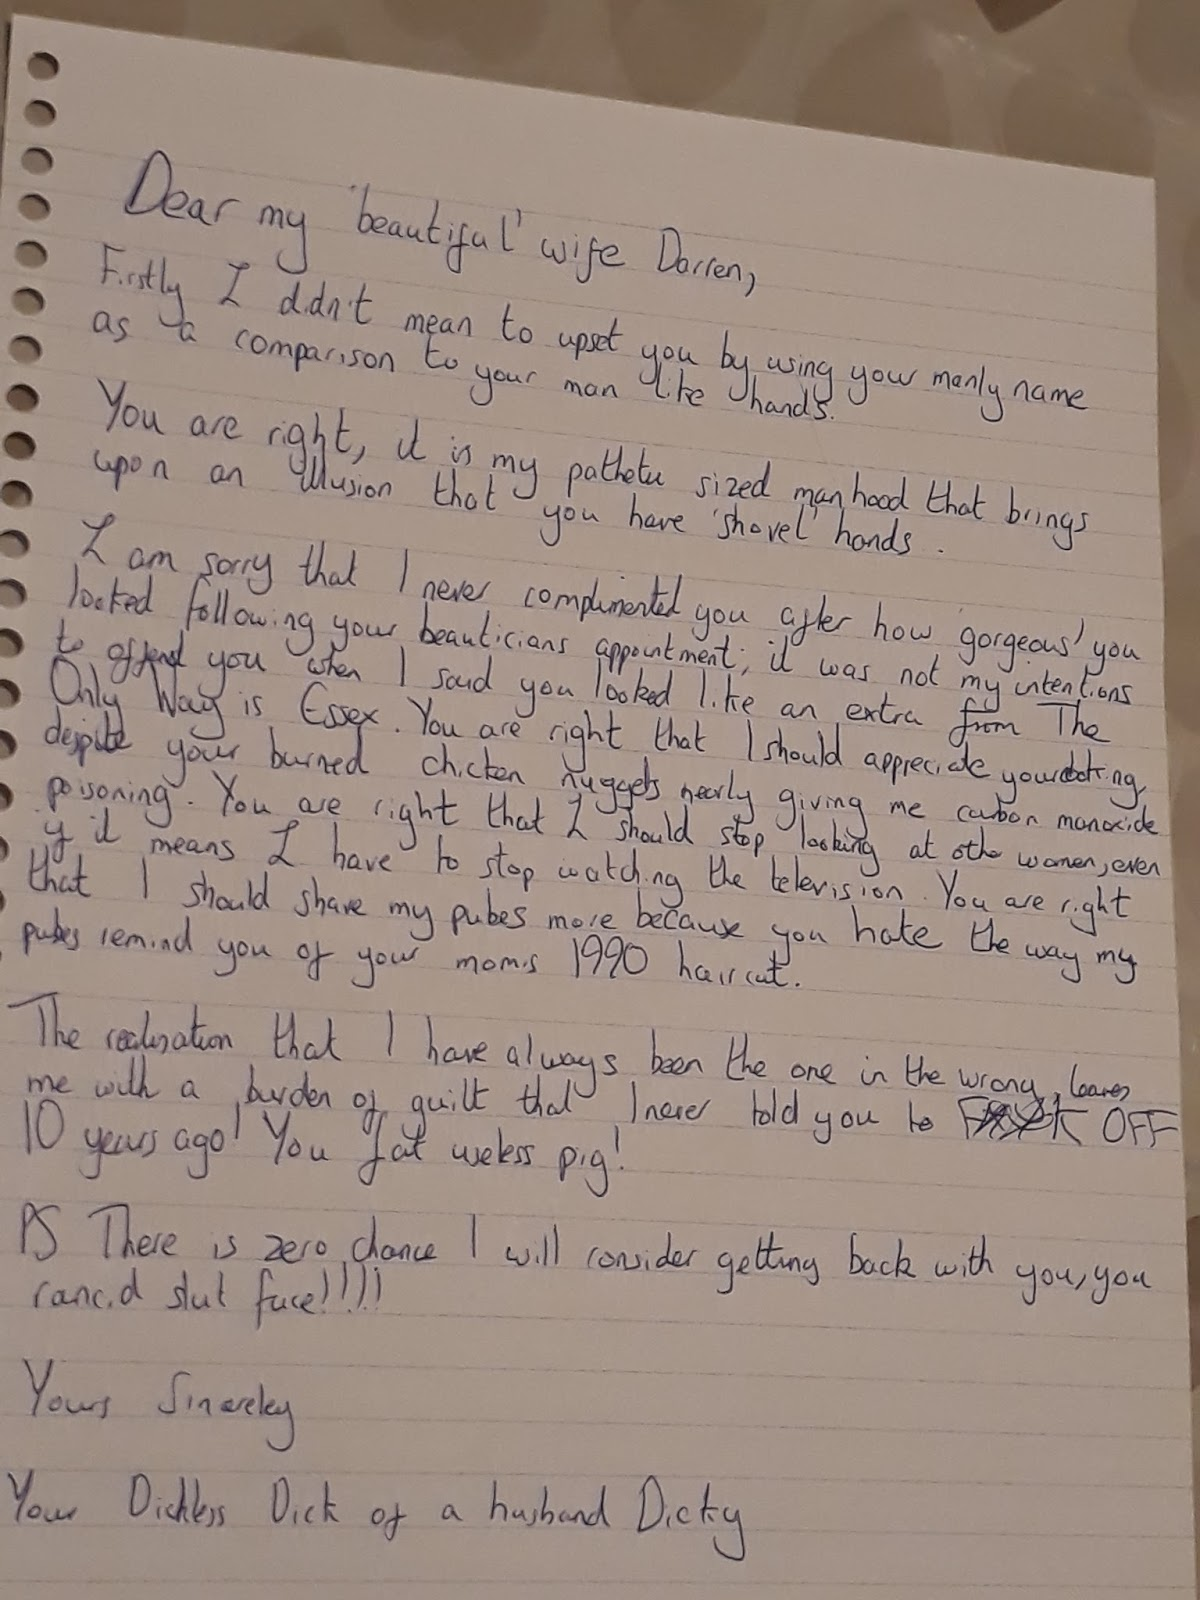 Is this the best apology letter to a wife you have ever seen?